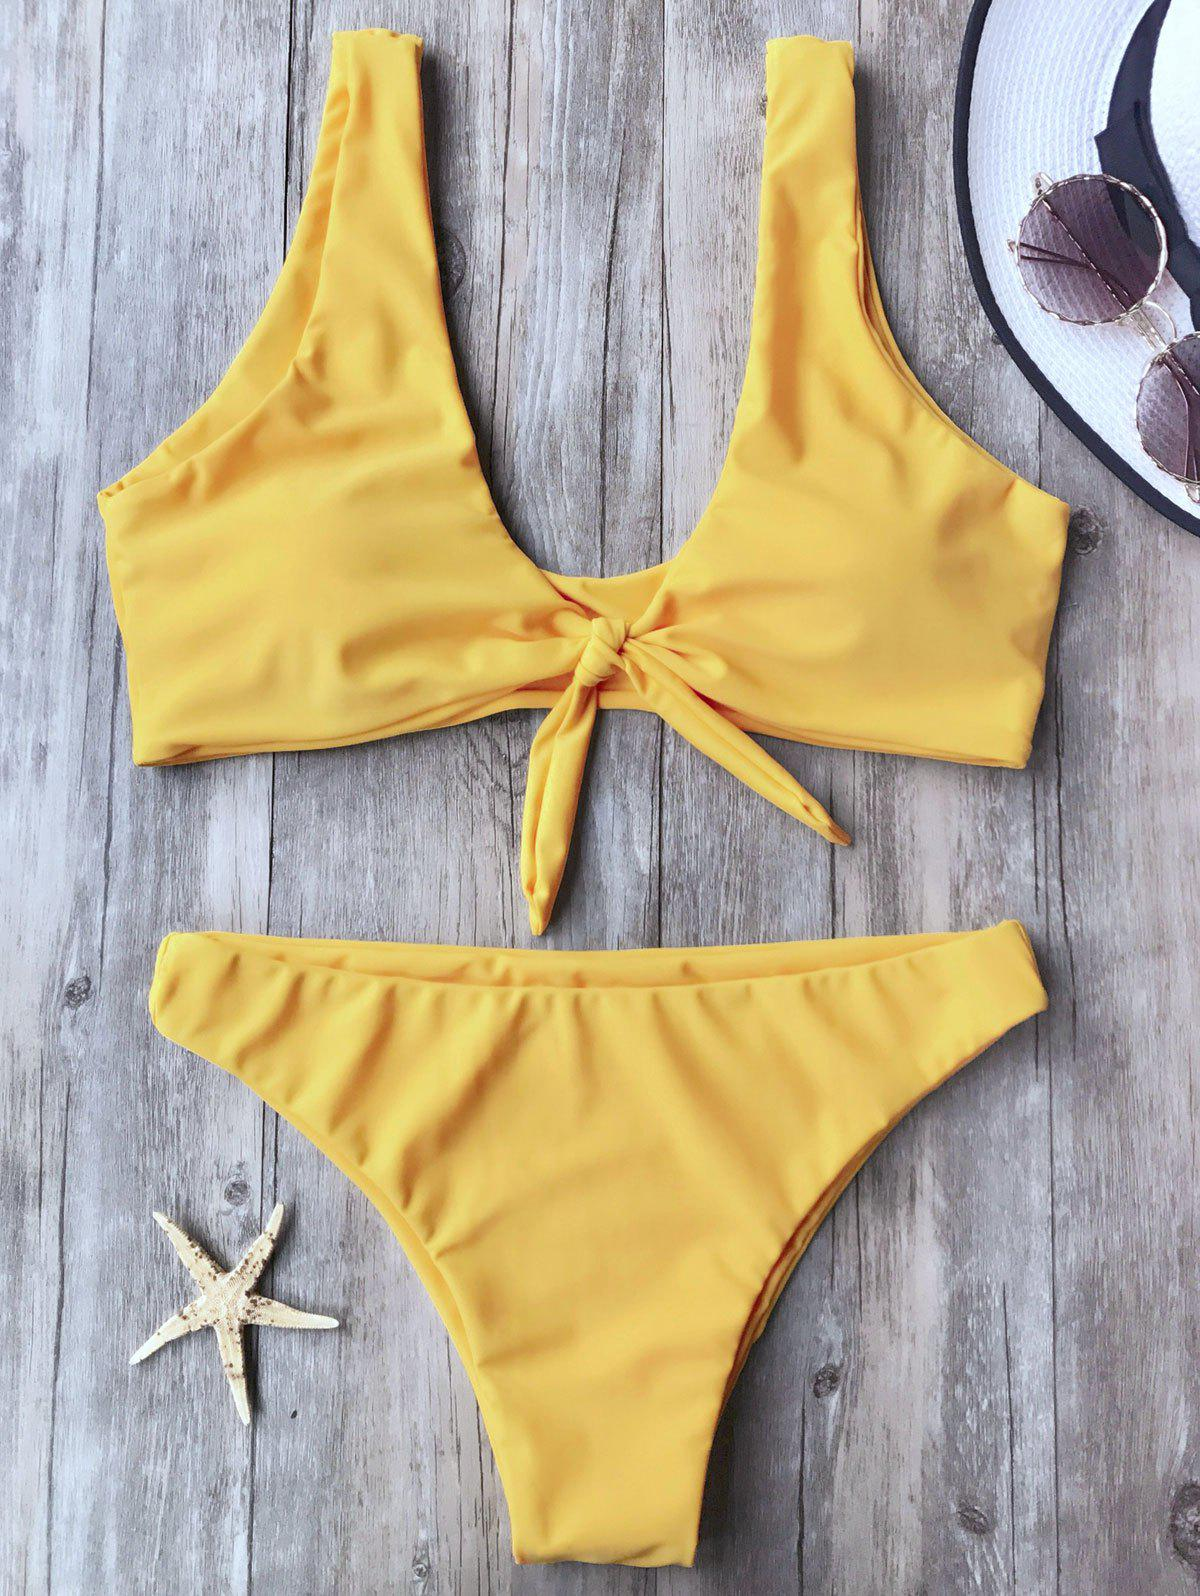 Knotted Scoop Neck Bikini SetWOMEN<br><br>Size: S; Color: YELLOW; Swimwear Type: Bikini; Gender: For Women; Material: Nylon,Polyester,Spandex; Bra Style: Padded; Support Type: Wire Free; Neckline: Scoop Neck; Pattern Type: Solid; Waist: Low Waisted; Elasticity: Elastic; Weight: 0.2000kg; Package Contents: 1 x Top  1 x Bottoms;